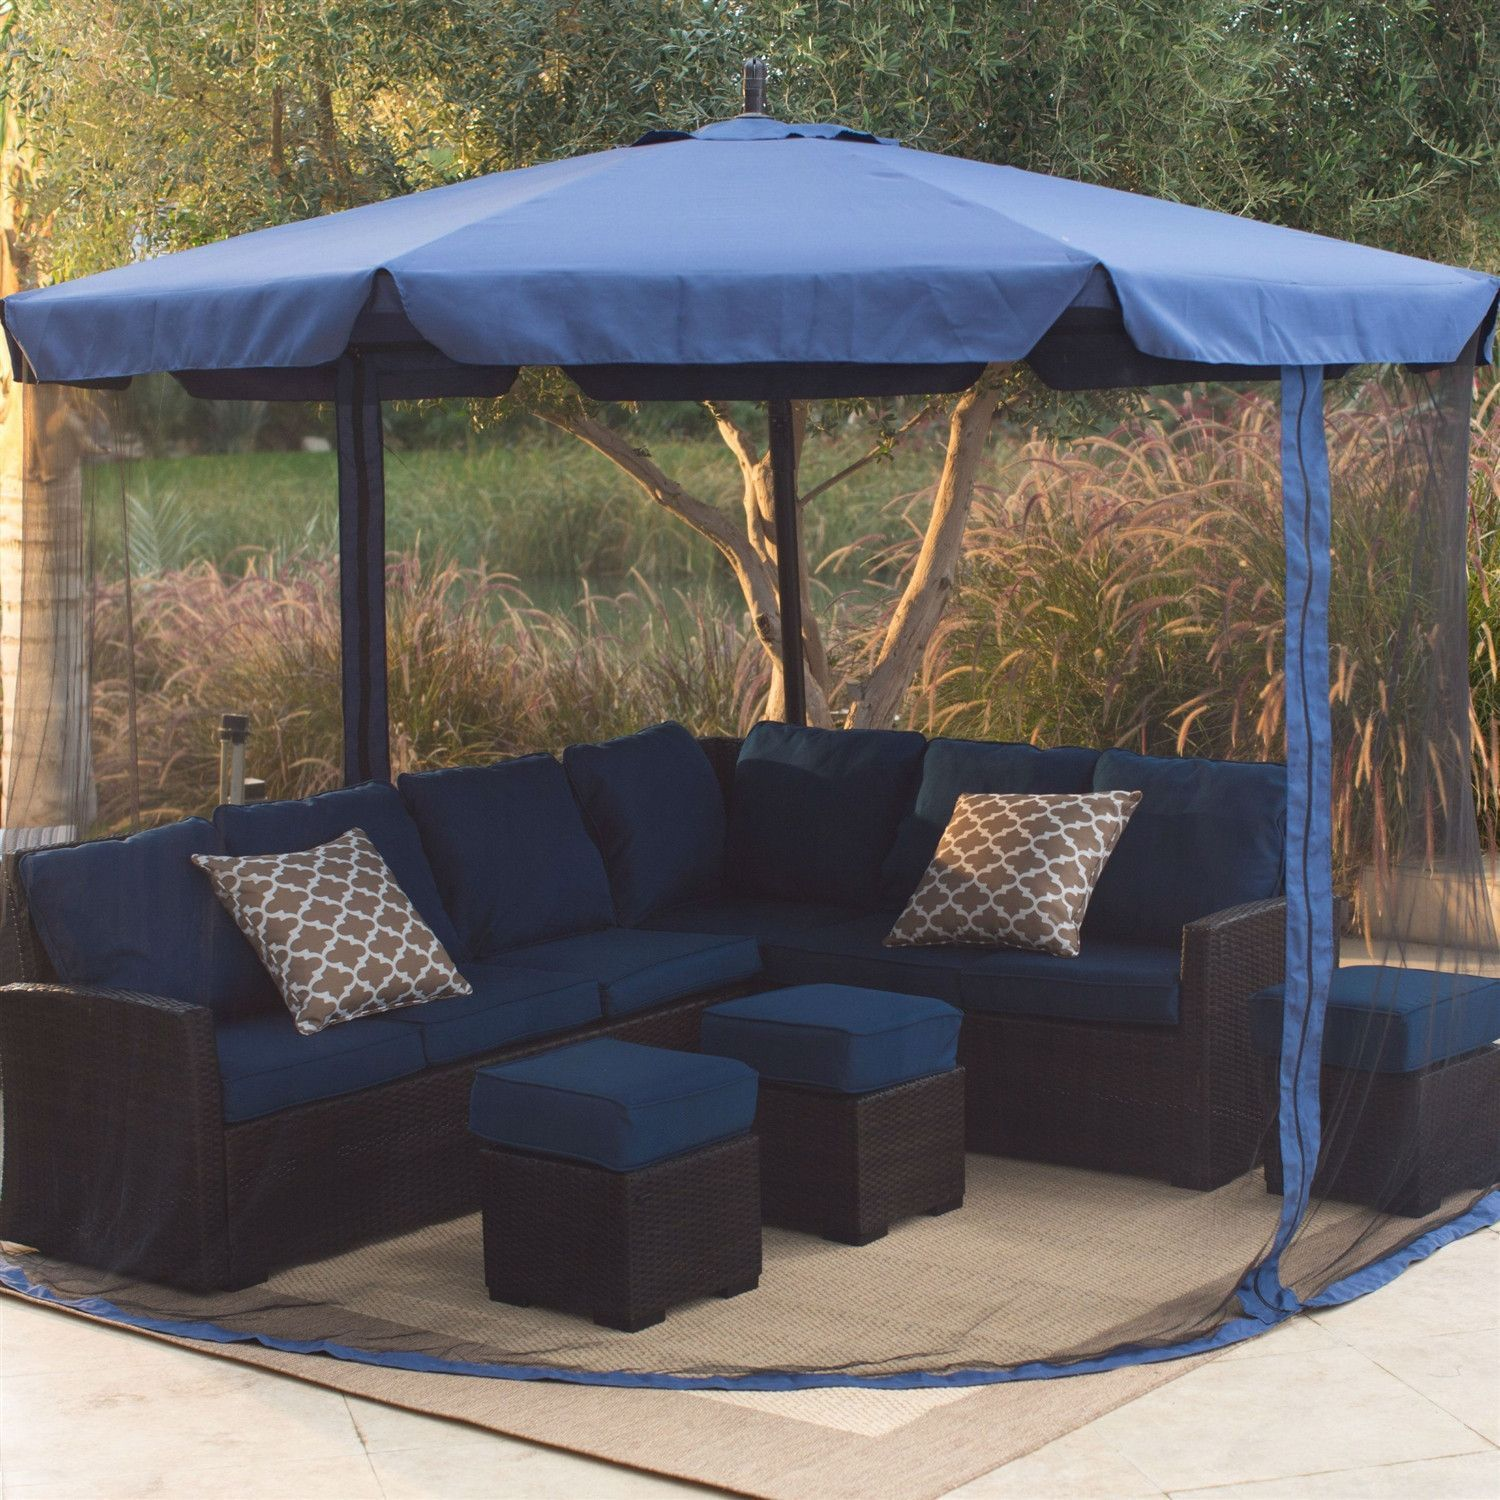 11 Ft Offset Patio Umbrella In Blue With Base And Detachable Mosquito Netting Outdoor Outdoor Furniture Offset Patio Umbrella Patio Umbrella Pergola Designs